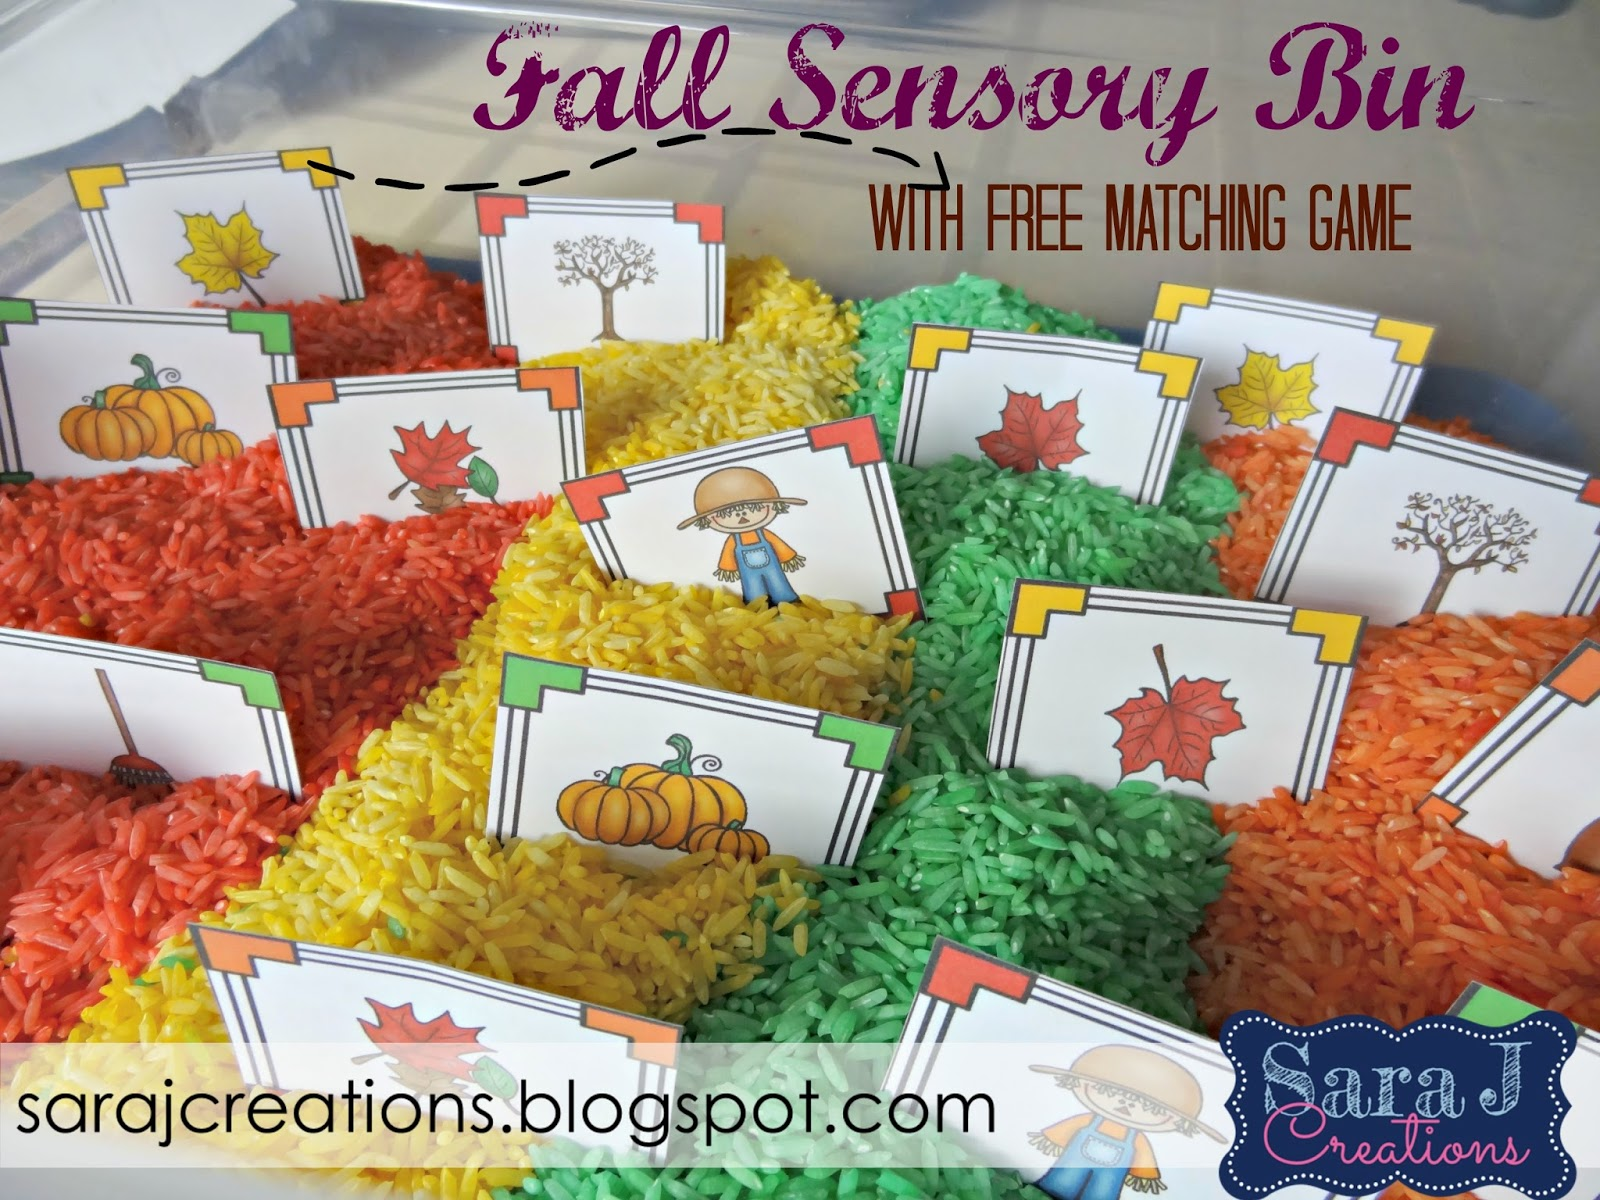 Fall sensory bin activities with free printable matching pictures card game.